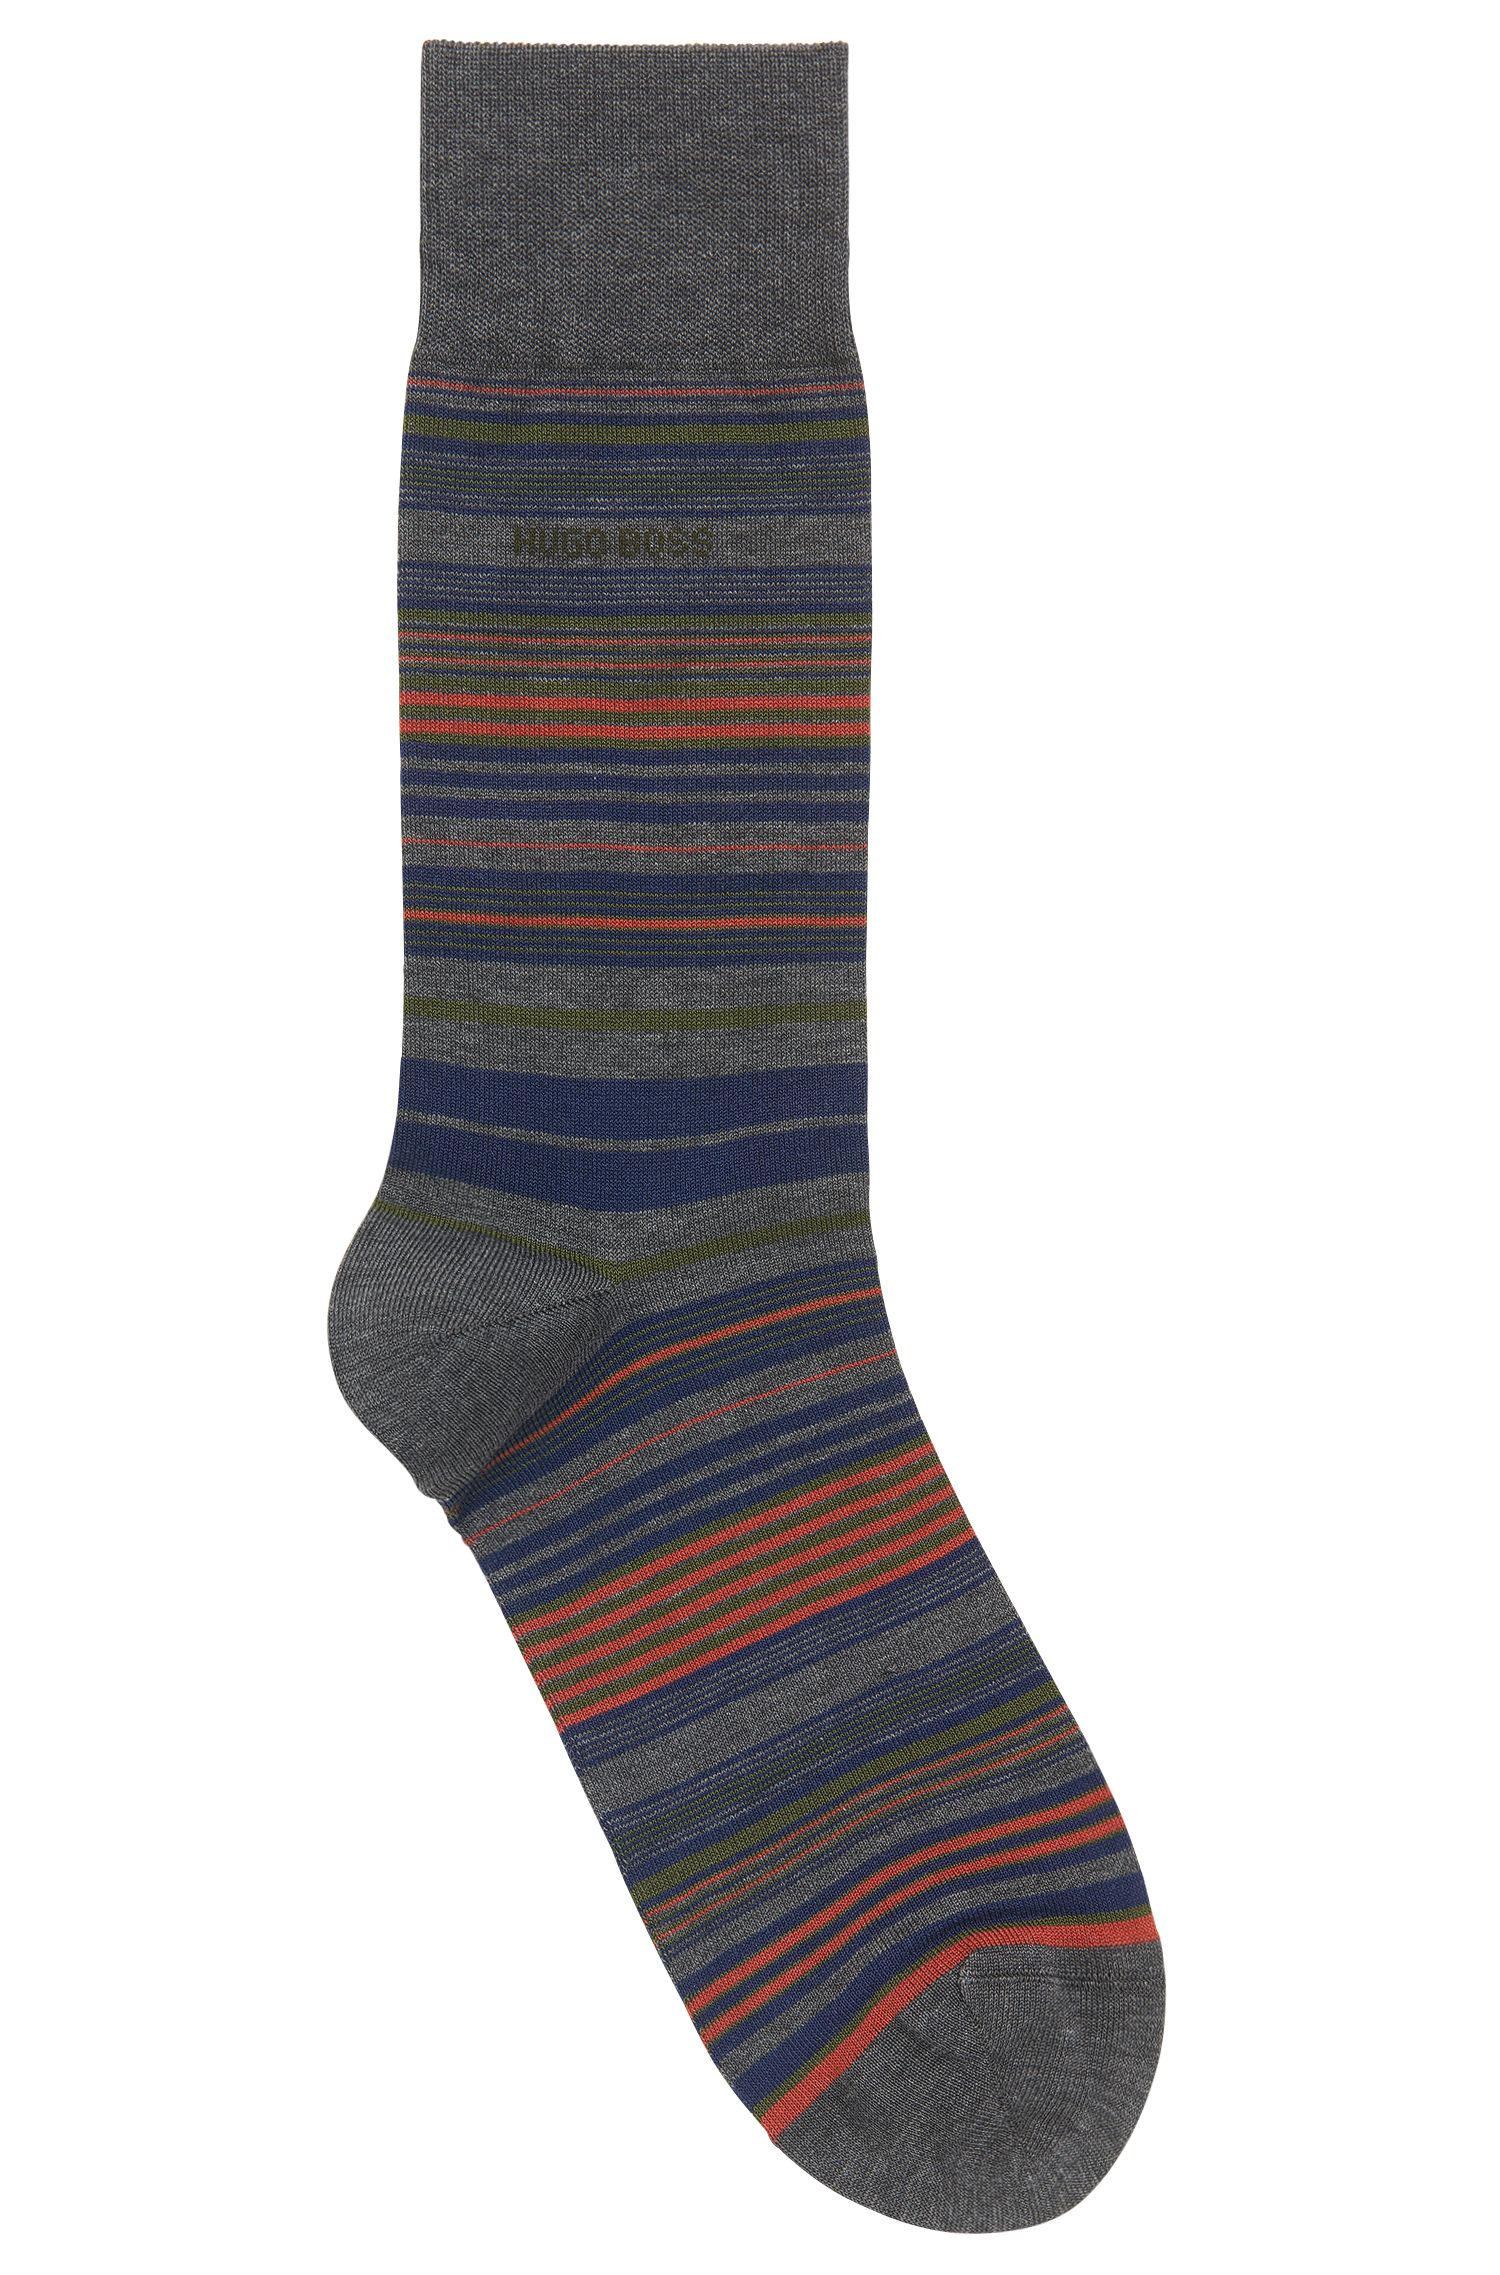 Horizontal-striped socks in a mercerised cotton blend